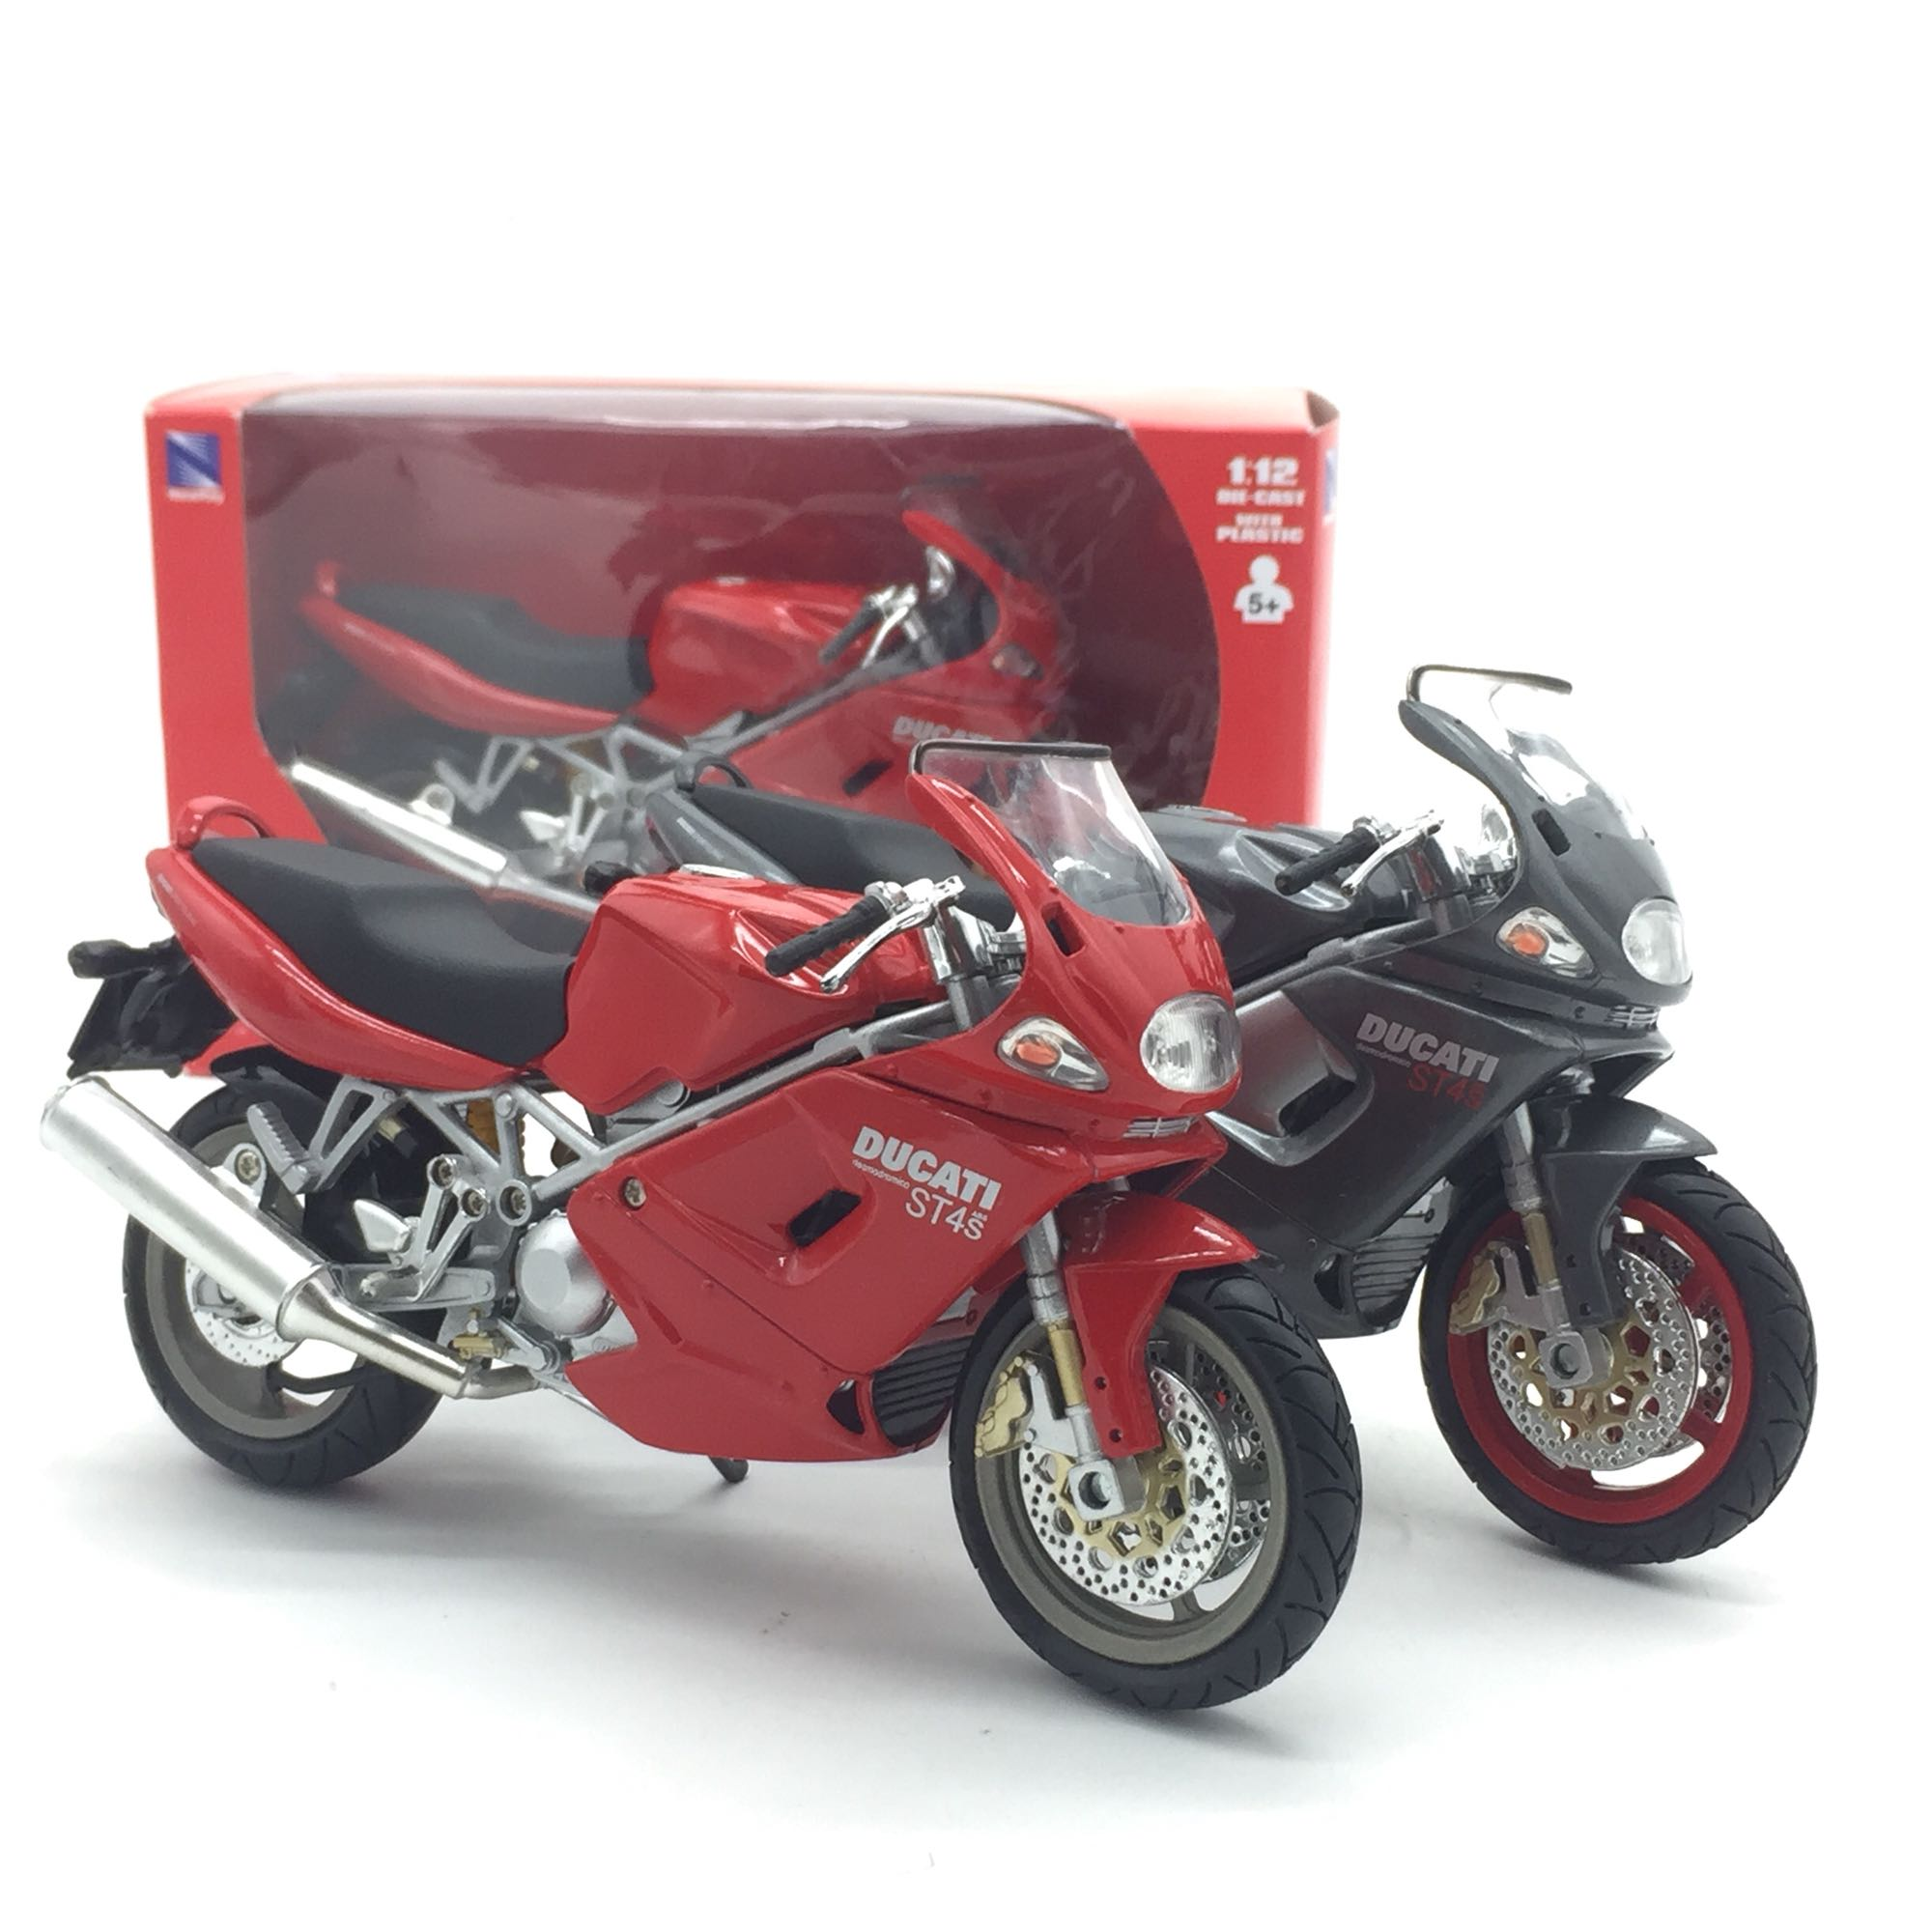 NEWRAY 1/12 Scale Classic Motorbike DUCATI ST4S Diecast Metal Motorcycle Model Toy For Gift,Kids,Collection